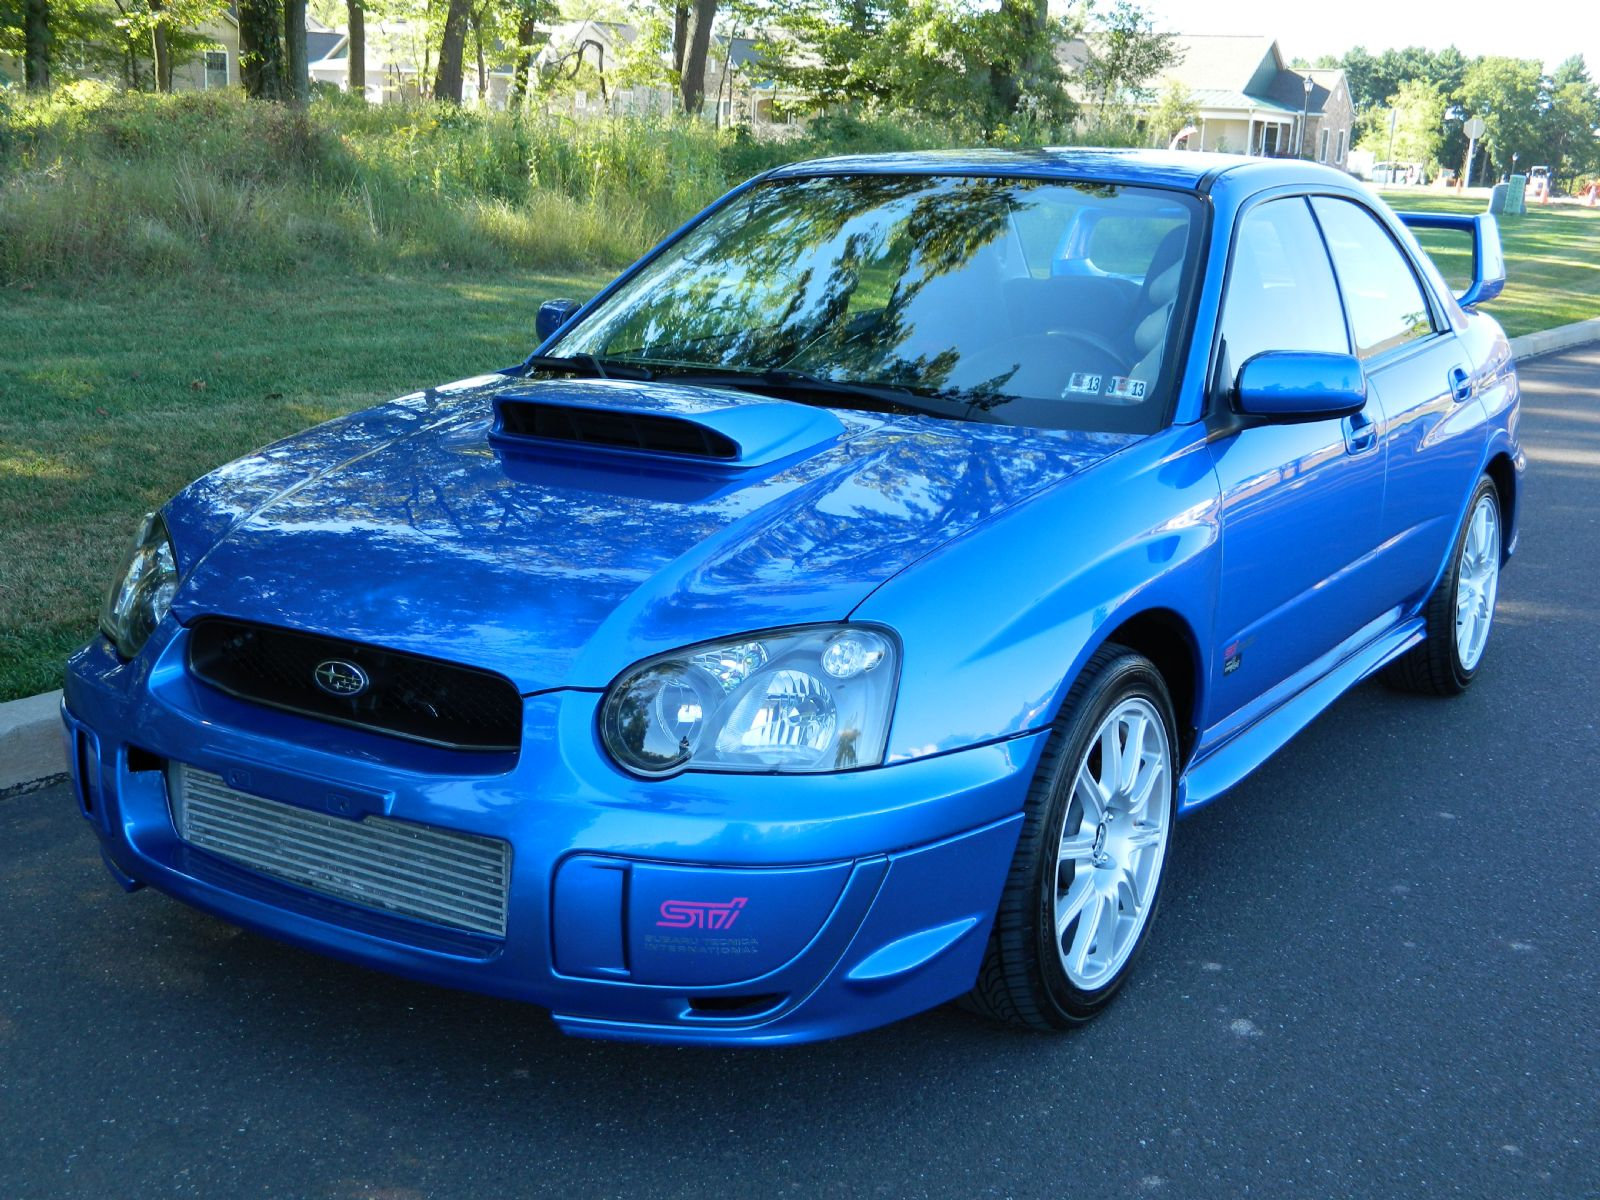 2005 subaru sti impreza sti impreza wrx sti for sale warminster pennsylvania. Black Bedroom Furniture Sets. Home Design Ideas